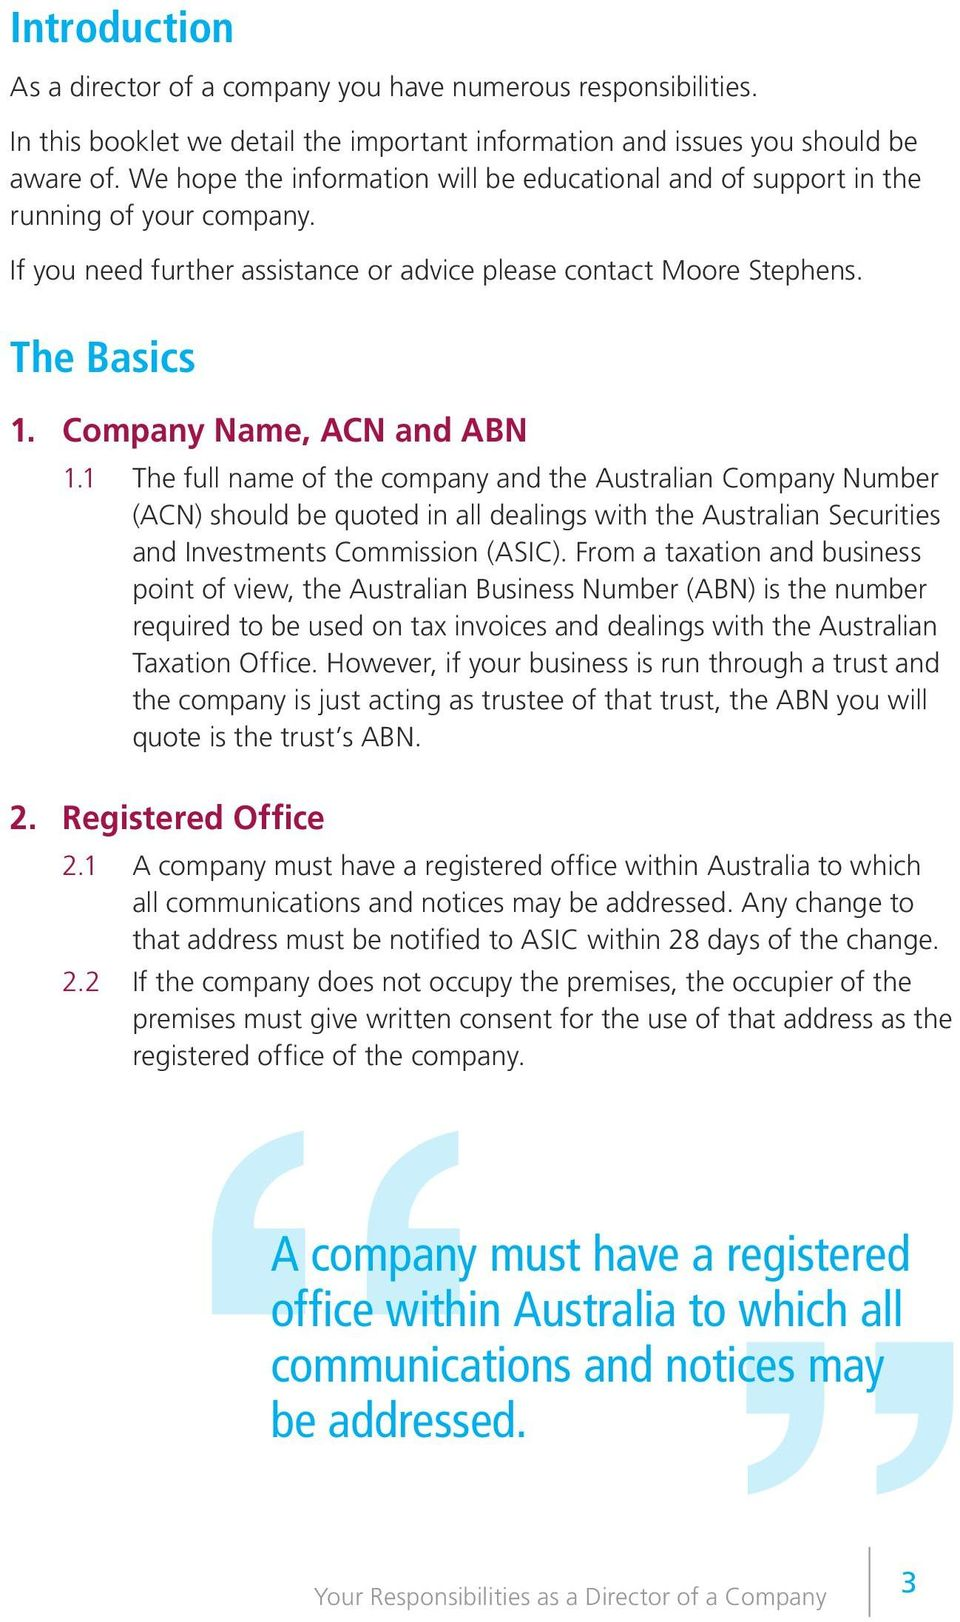 Company Name, ACN and ABN 1.1 The full name of the company and the Australian Company Number (ACN) should be quoted in all dealings with the Australian Securities and Investments Commission (ASIC).